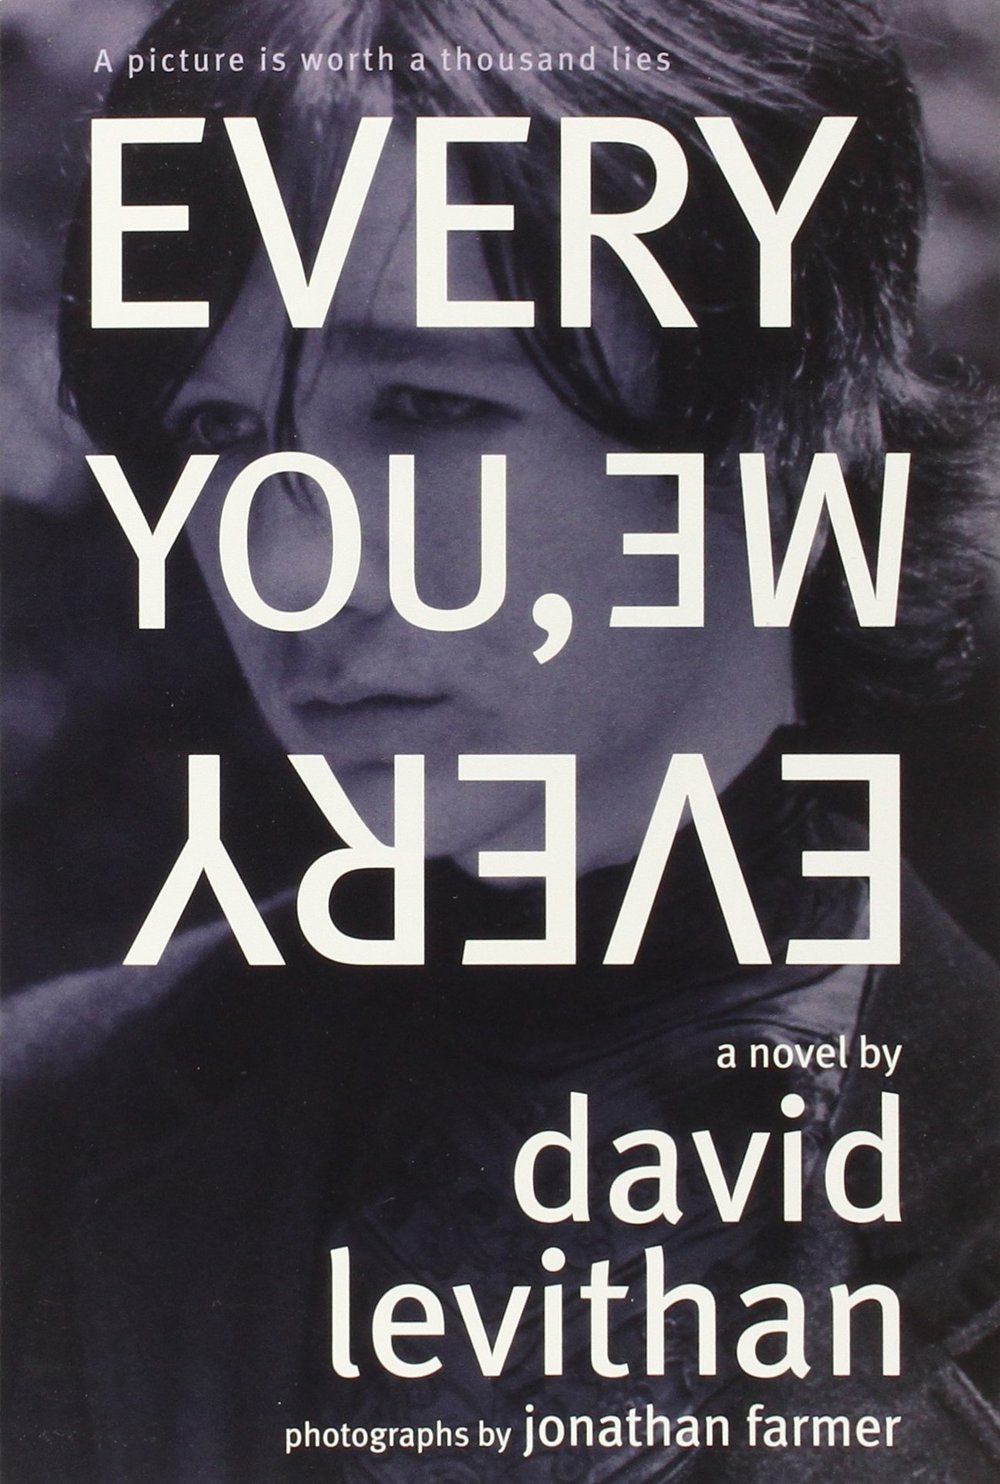 david-levithan-every-you-every-me.jpg